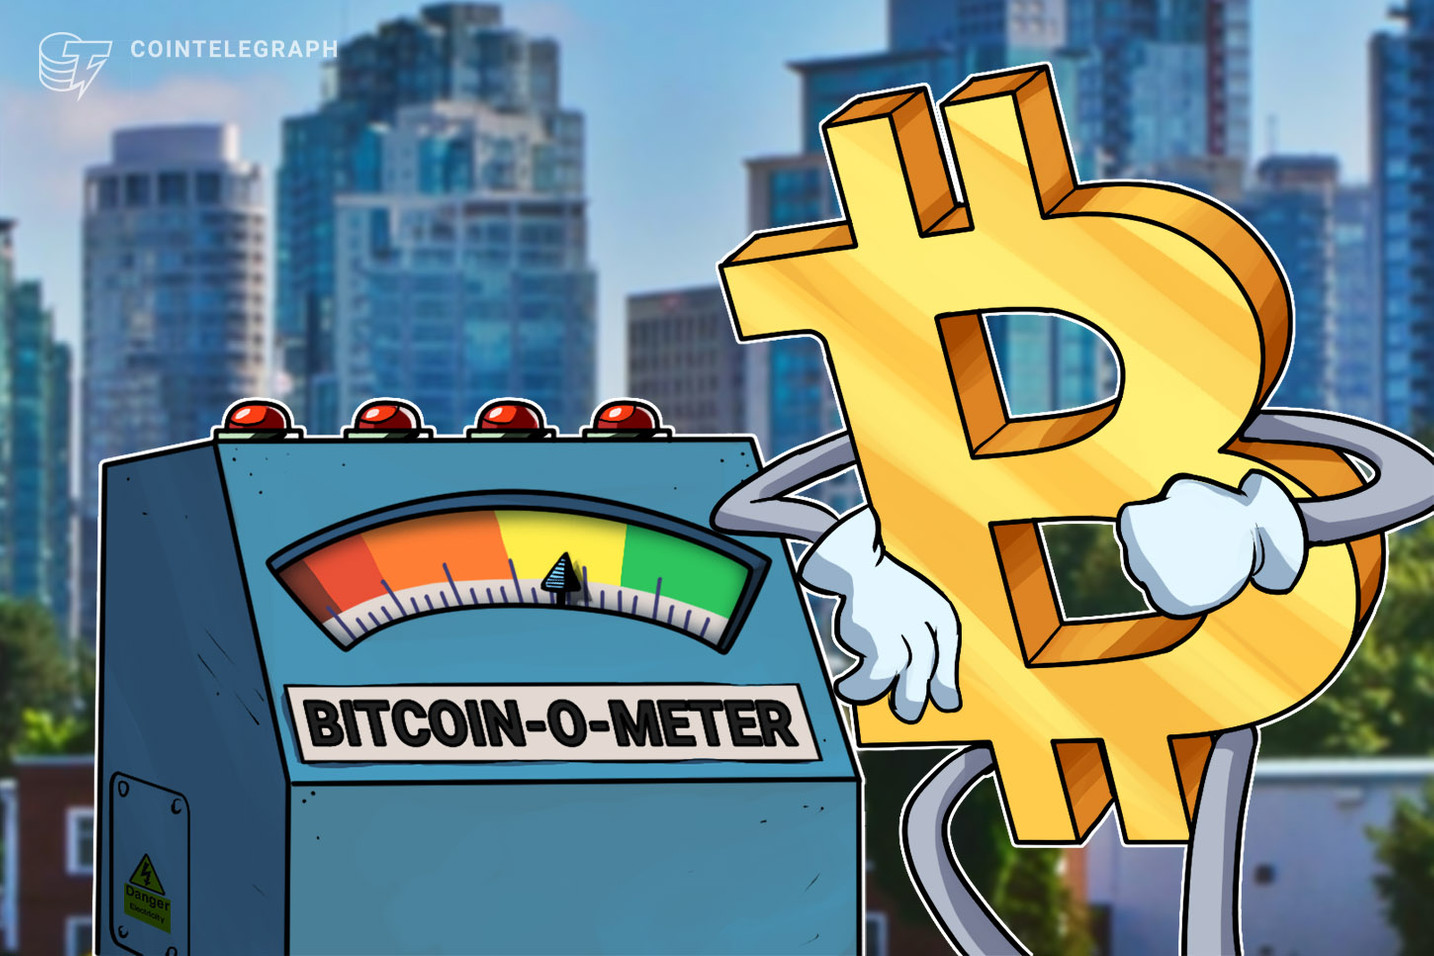 I Would Not Long or Short Bitcoin, Says Billionaire Stablecoin Investor Druckenmiller